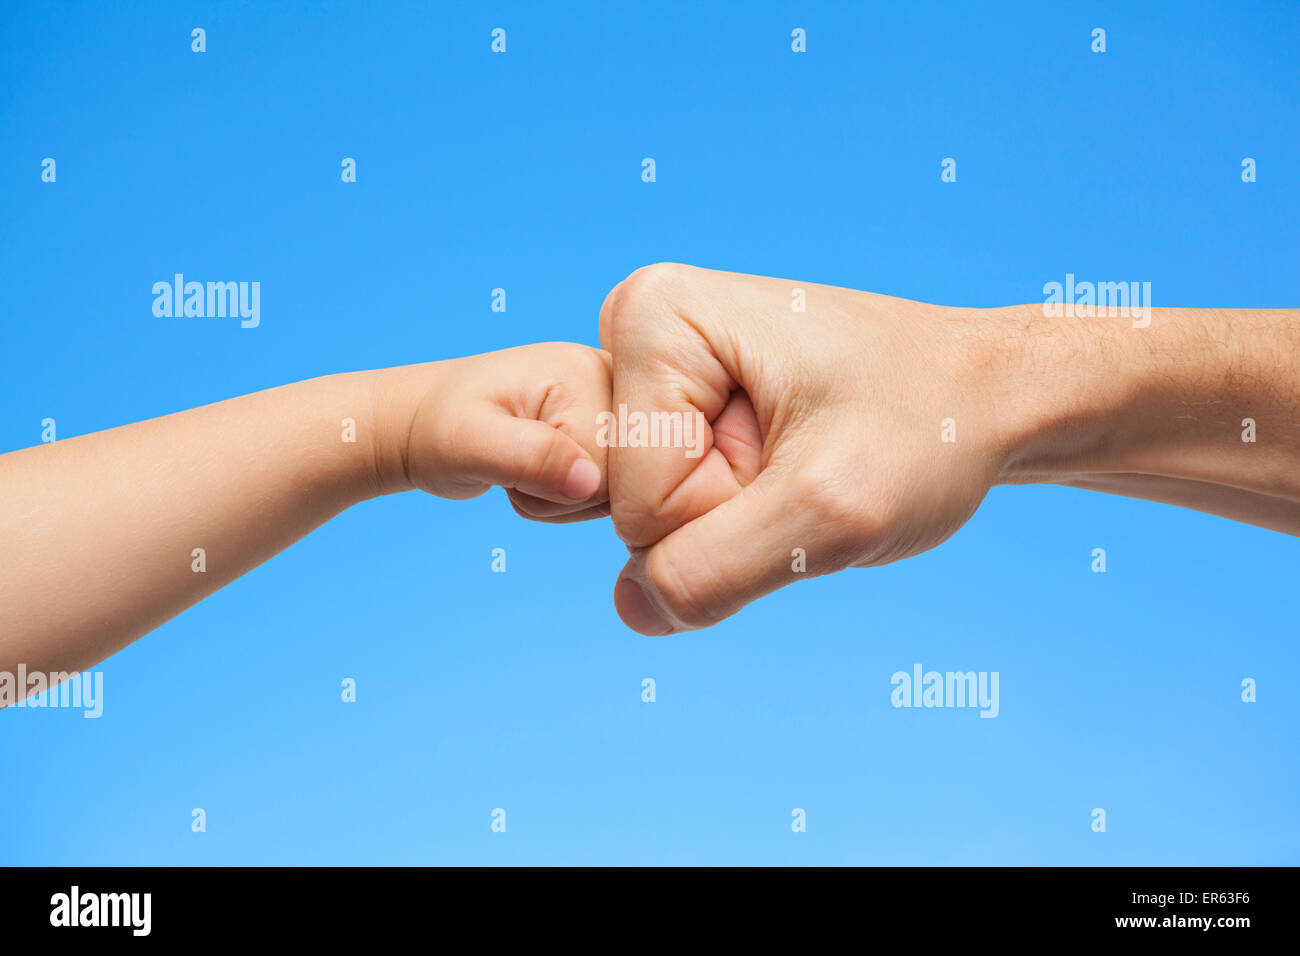 father and son punching fists/hands for agreement on blue sky background. - Stock Image